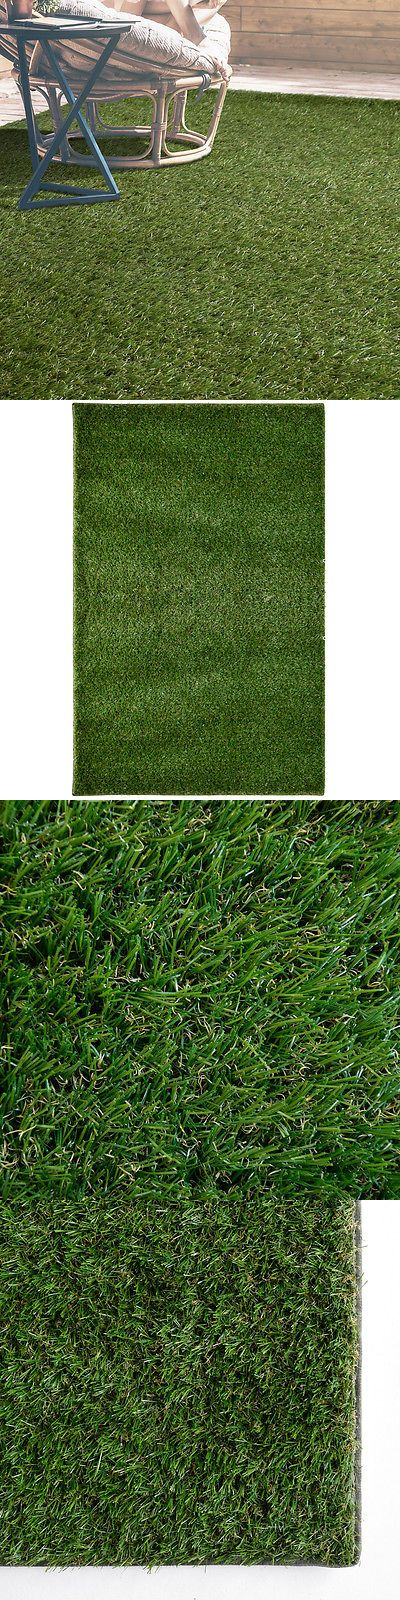 Good Other Rugs And Carpets 8409: Indoor Outdoor Artificial Fake Grass Area Rug   U003e BUY